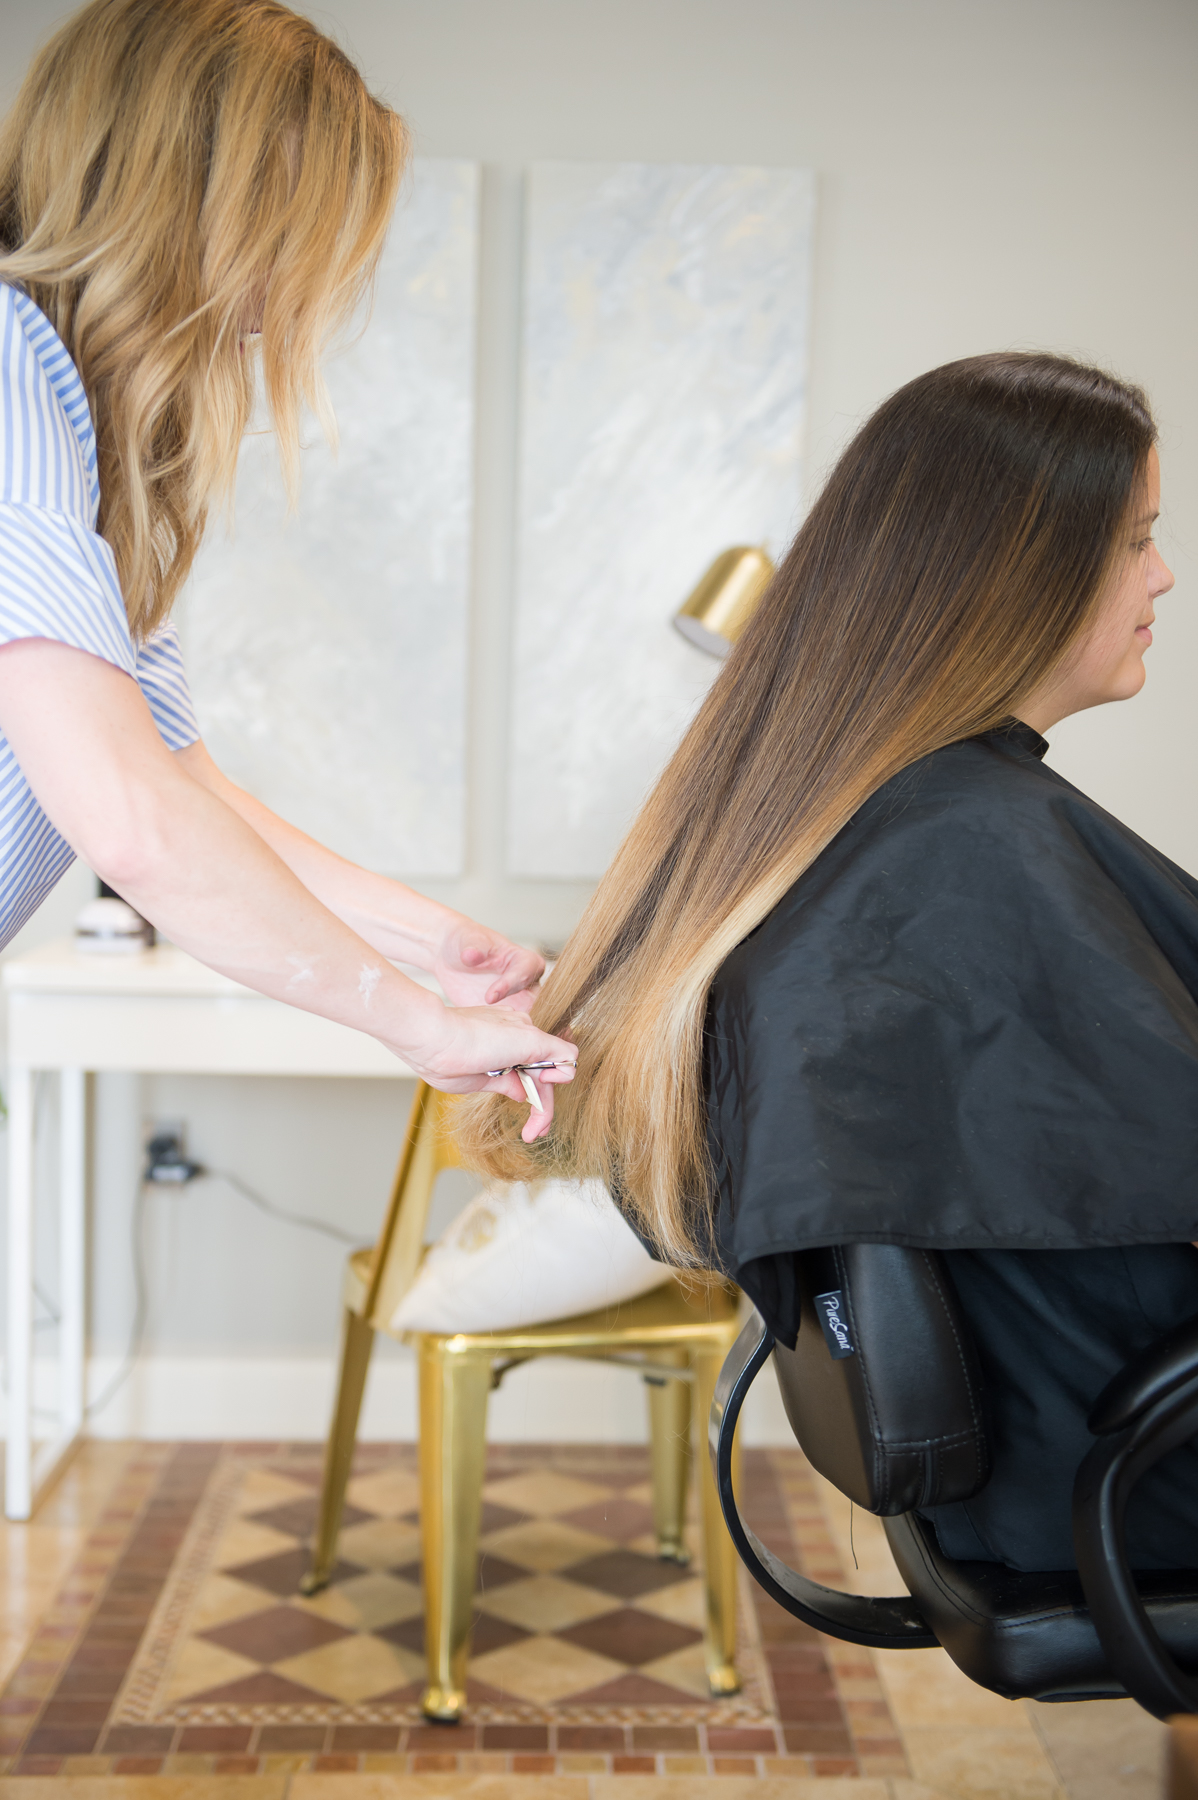 Brittany Hall straightens out the hair of a woman sitting in a salon chair.